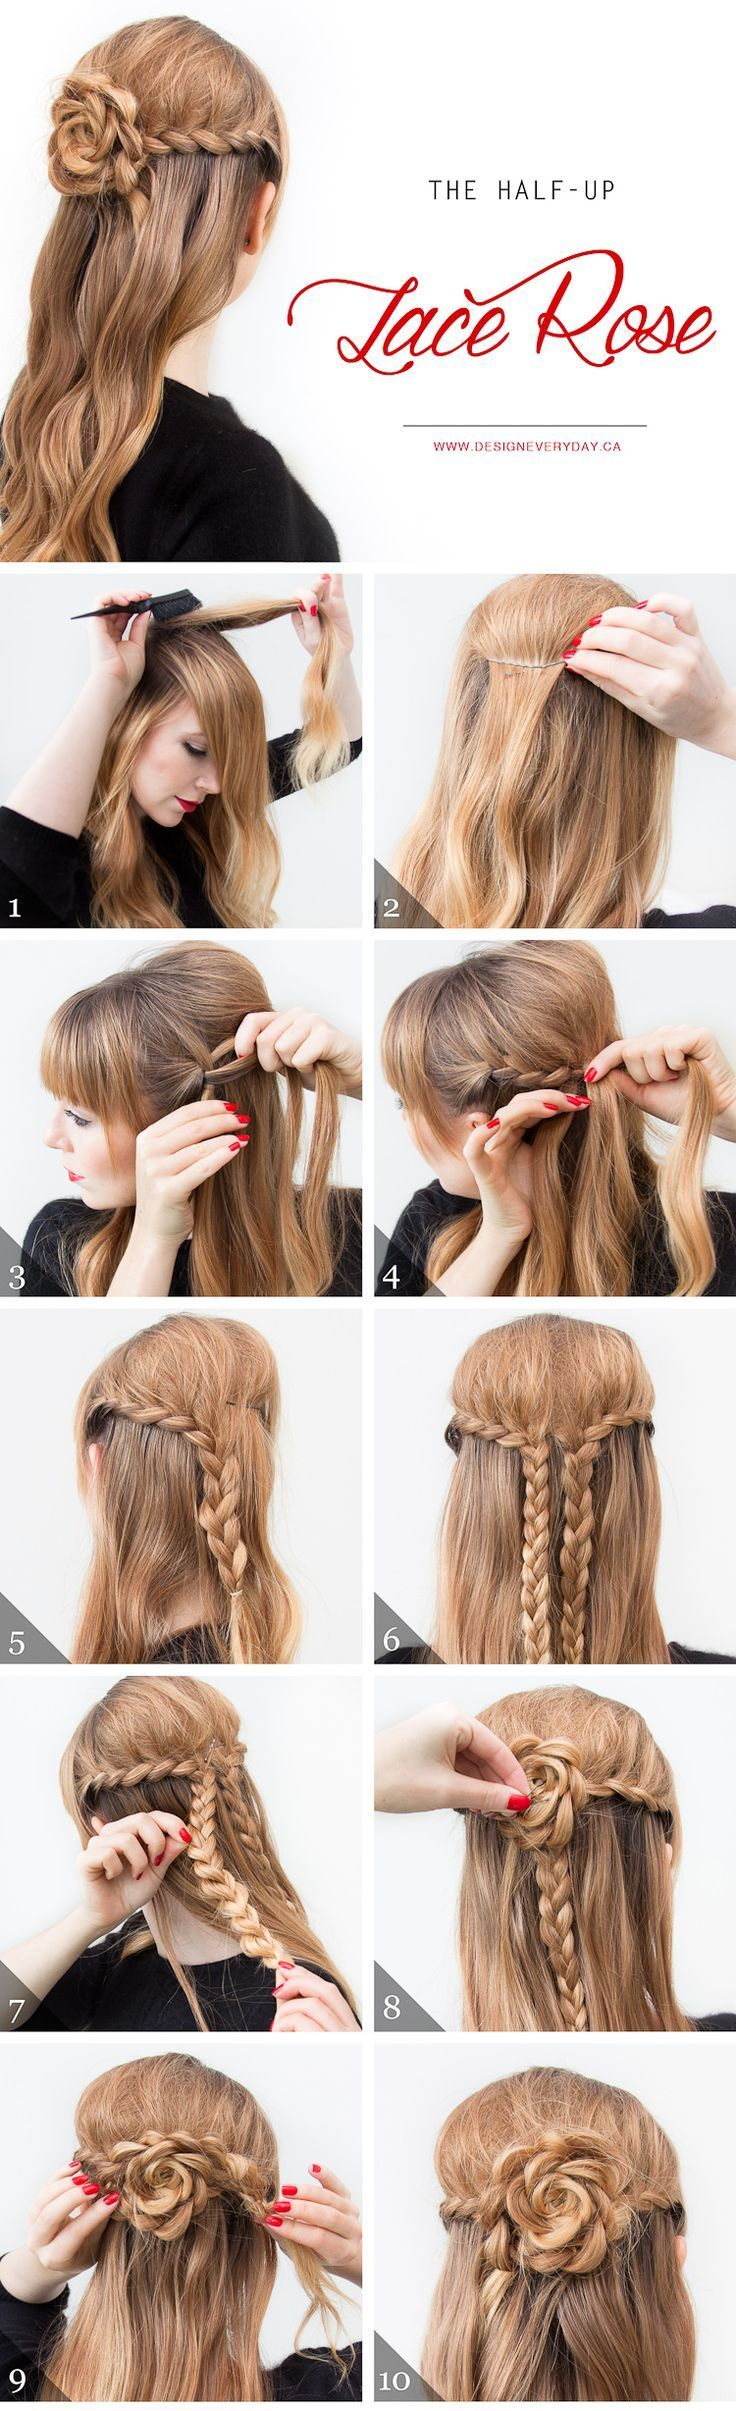 easy step-by-step hair tutorials you must see and try to copy